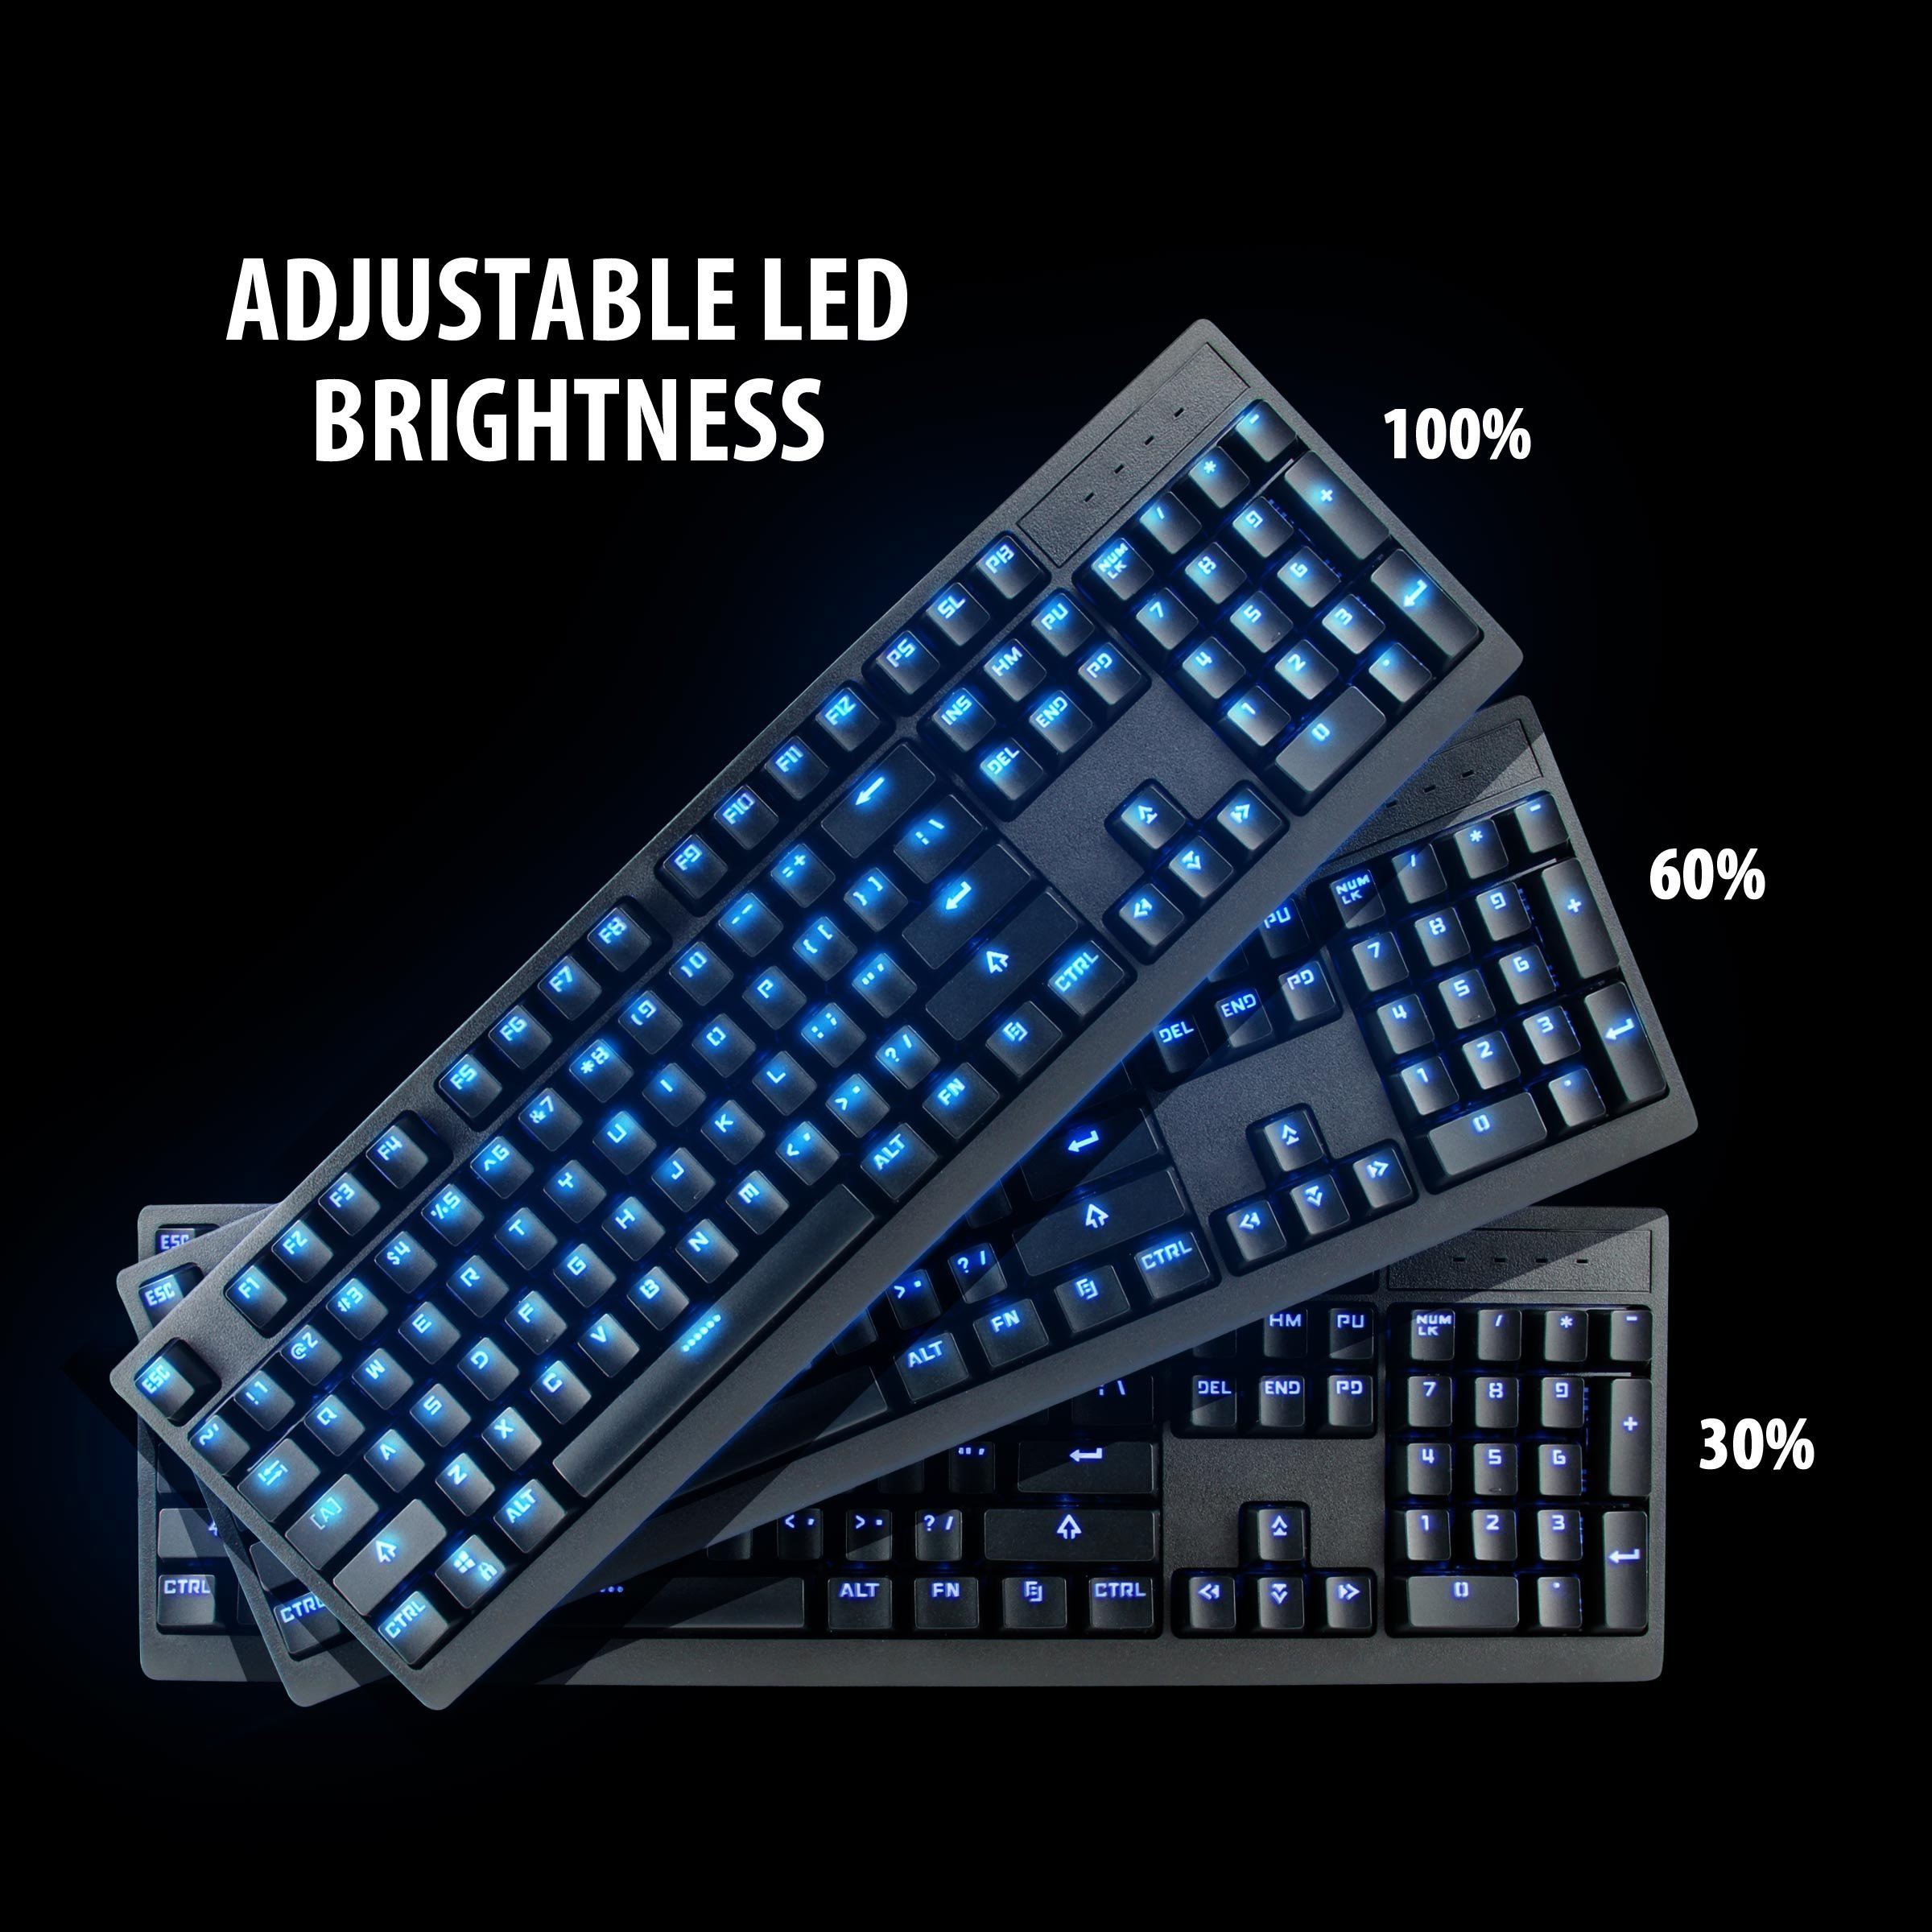 ENHANCE GX-K5 FPS Mechanical Gaming Keyboard with Blue LED Backlighting & TTC Brown Tactile Switches – Great for Counter-Strike: Global Offensive , Overwatch , Call of Duty: Black Ops III & More Games by ENHANCE (Image #3)